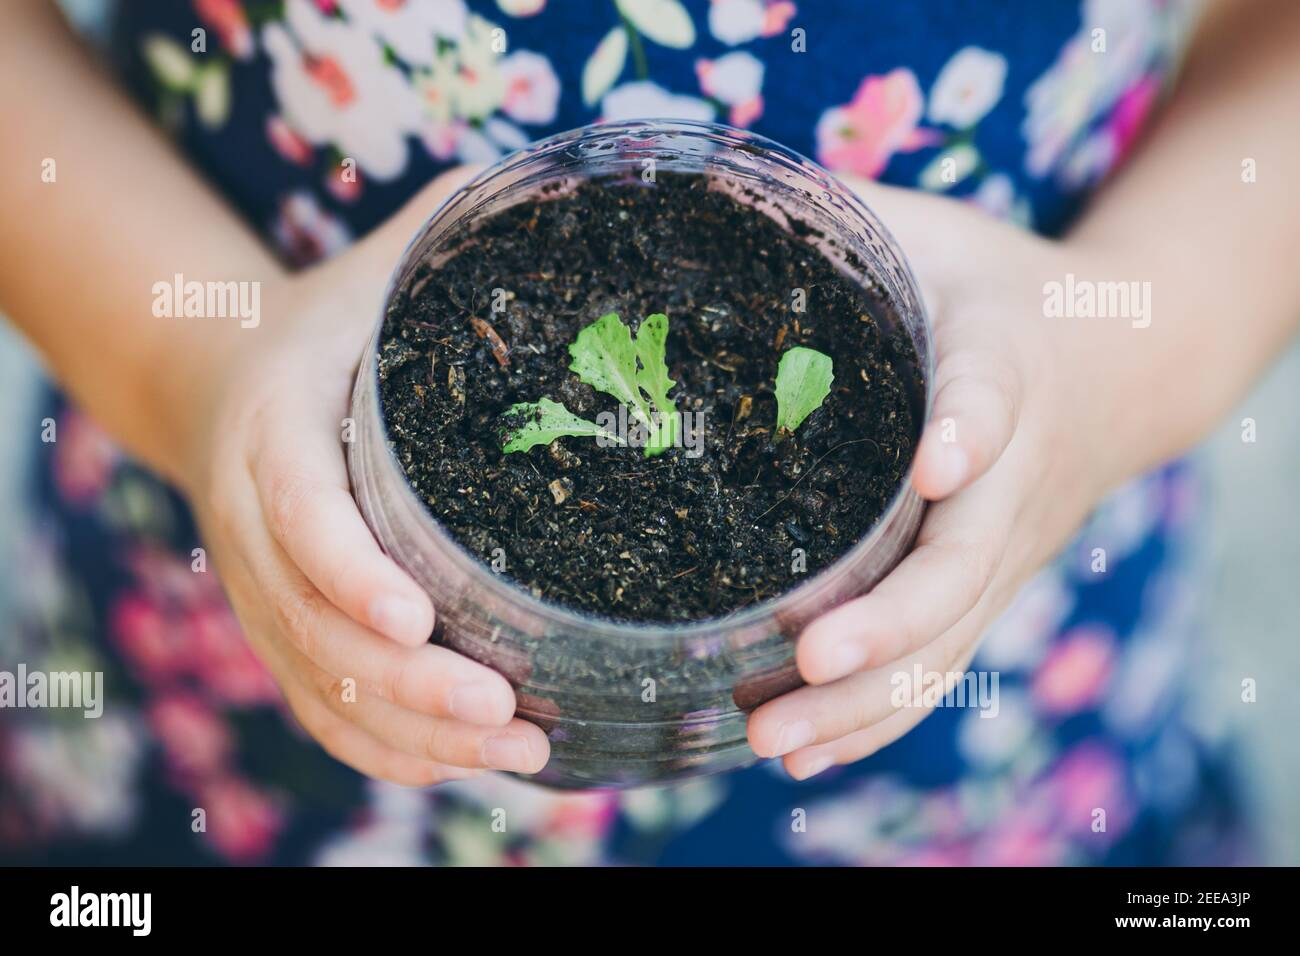 kid planting vegetable sprout in a recycled plastic reused bottle. Concept for grow your own food at home for sustainable living. Stock Photo